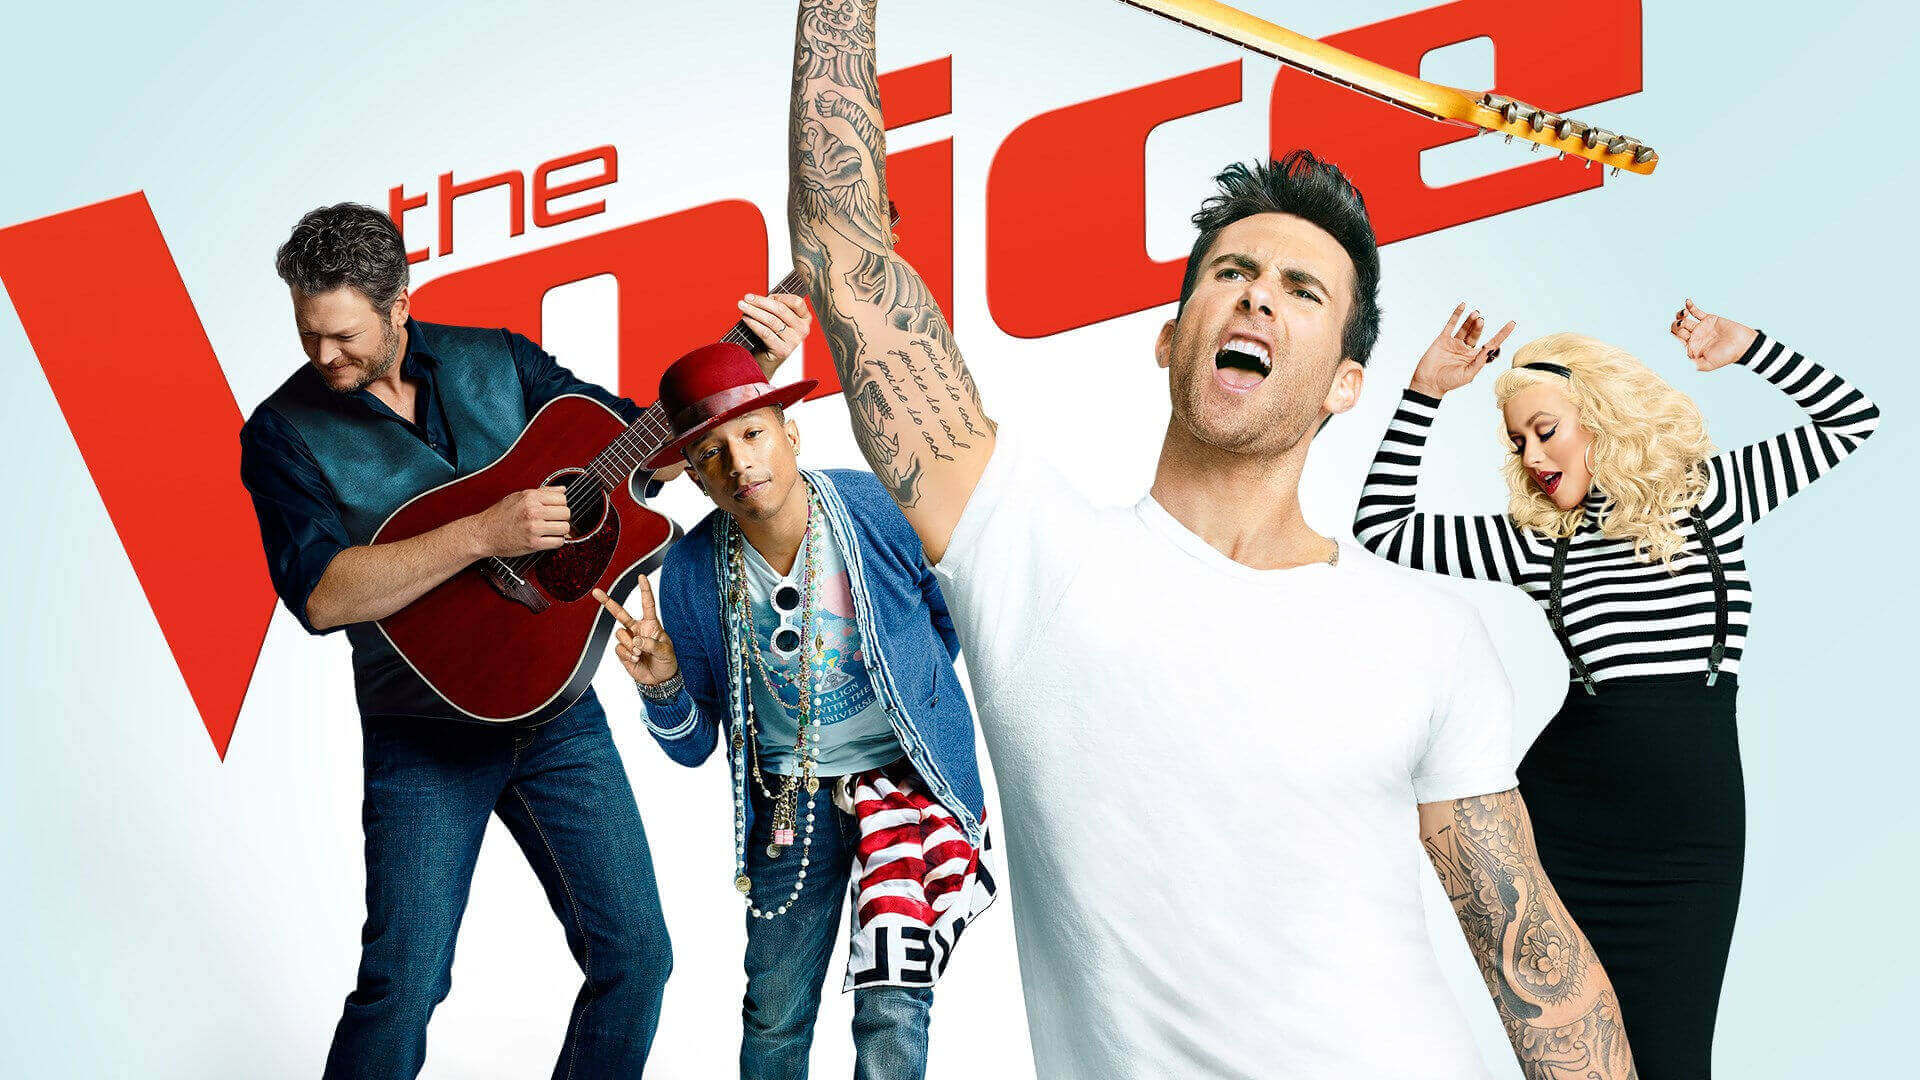 the voice - photo #36